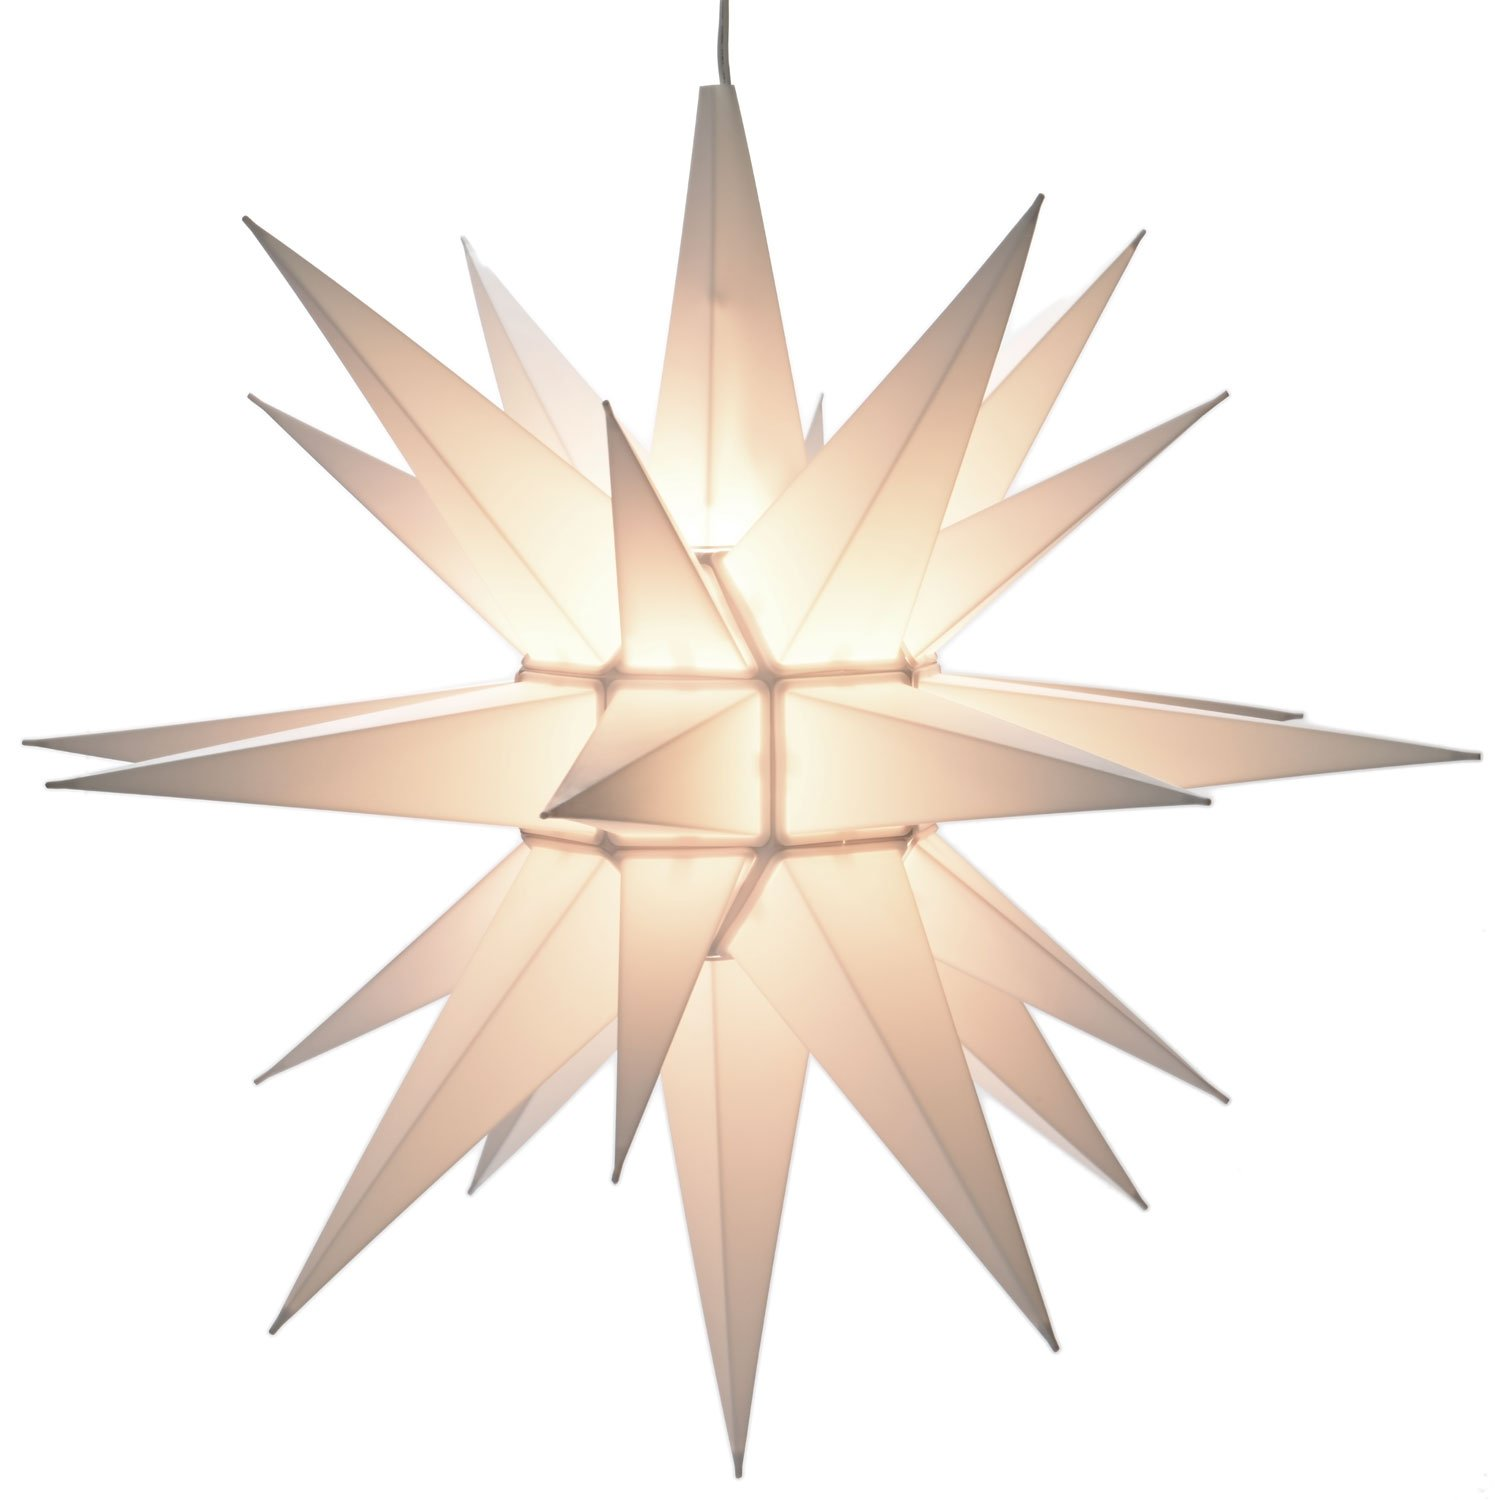 Star of bethlehem outdoor christmas decoration - Star Of Bethlehem Outdoor Christmas Decoration 58